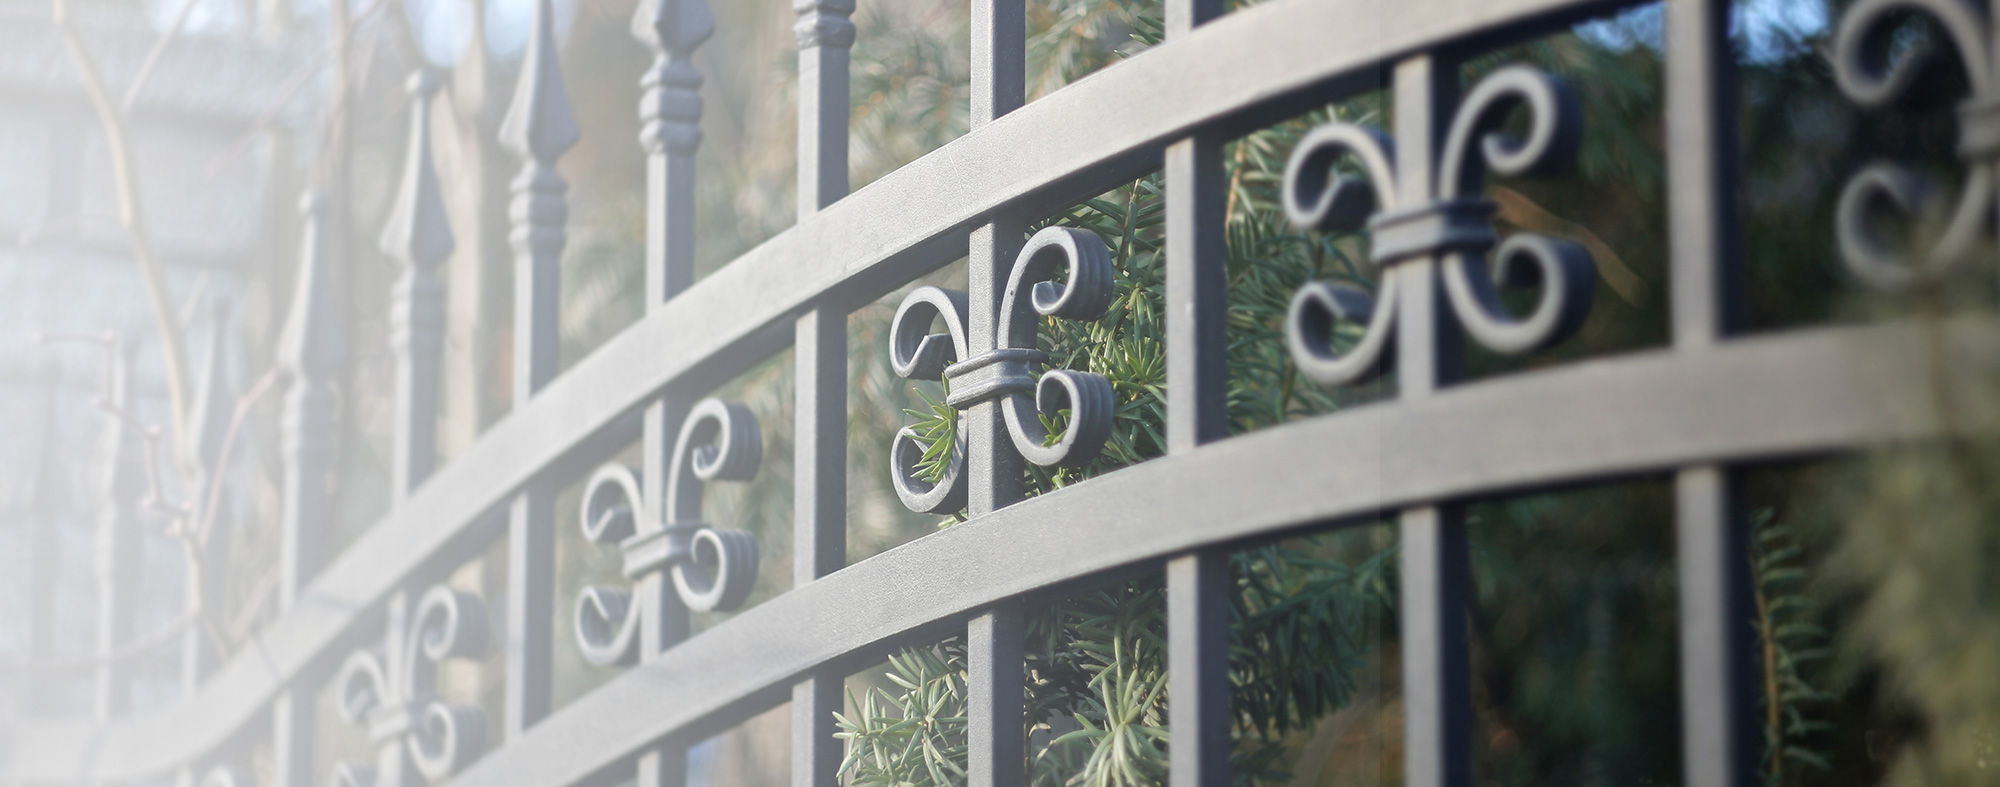 Residential Gates Barriers Shutters Ultimate Fire and Security